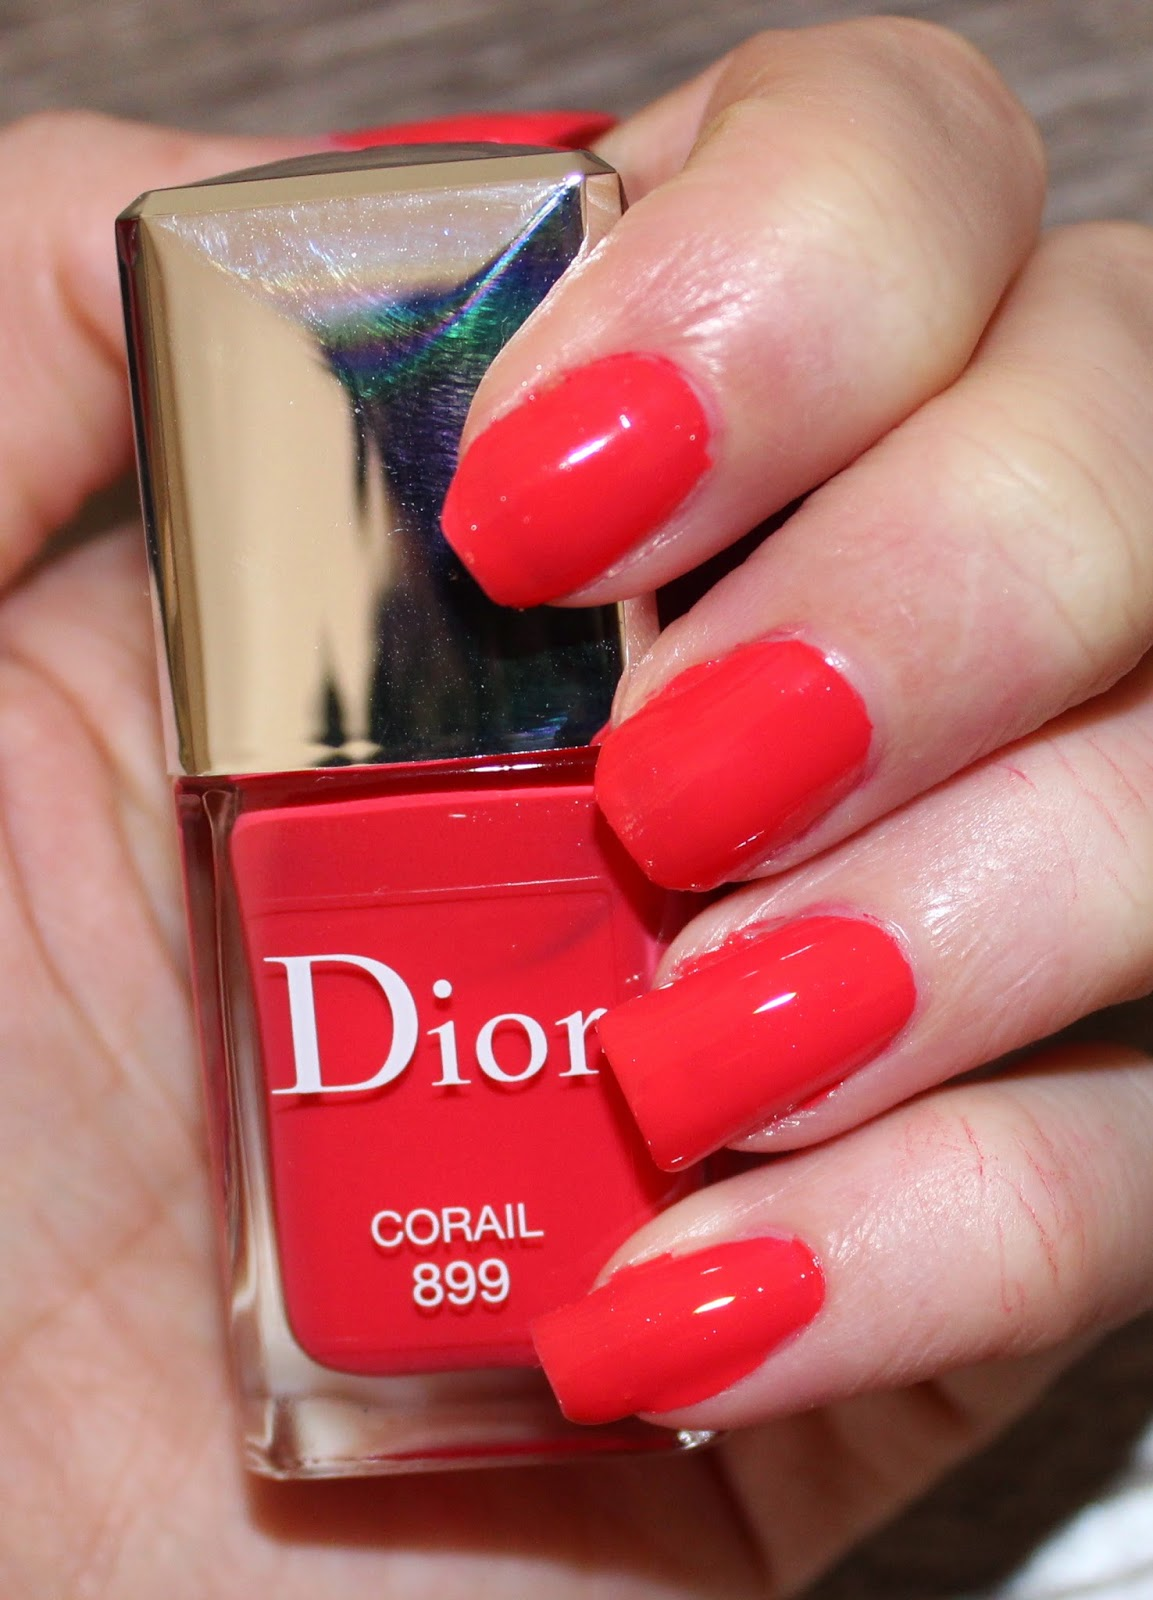 Dior Vernis in Corail